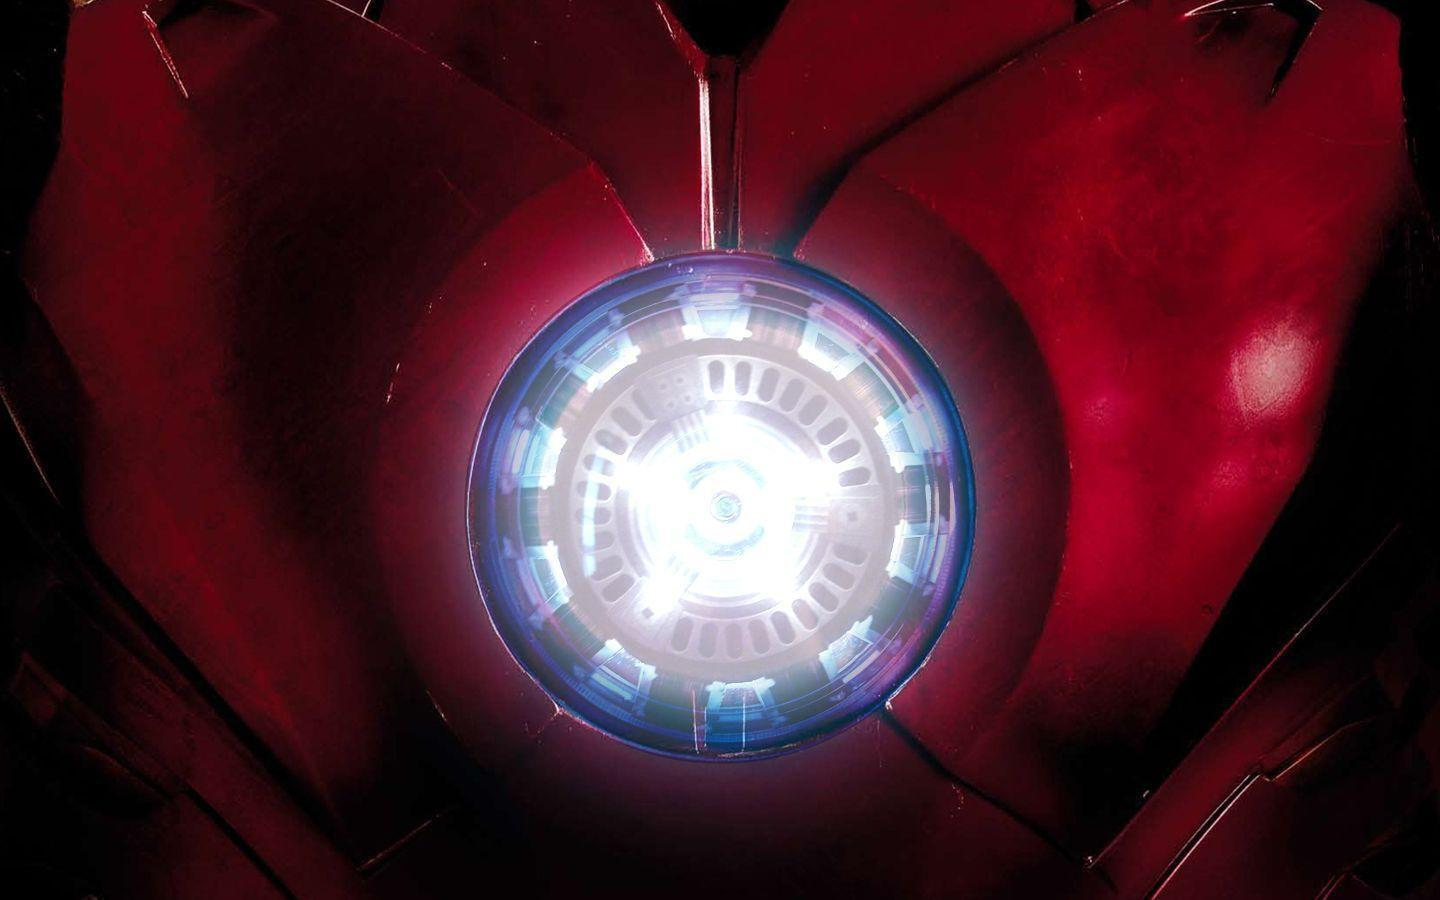 Iron man armor wallpapers wallpaper cave - Iron man heart wallpaper ...